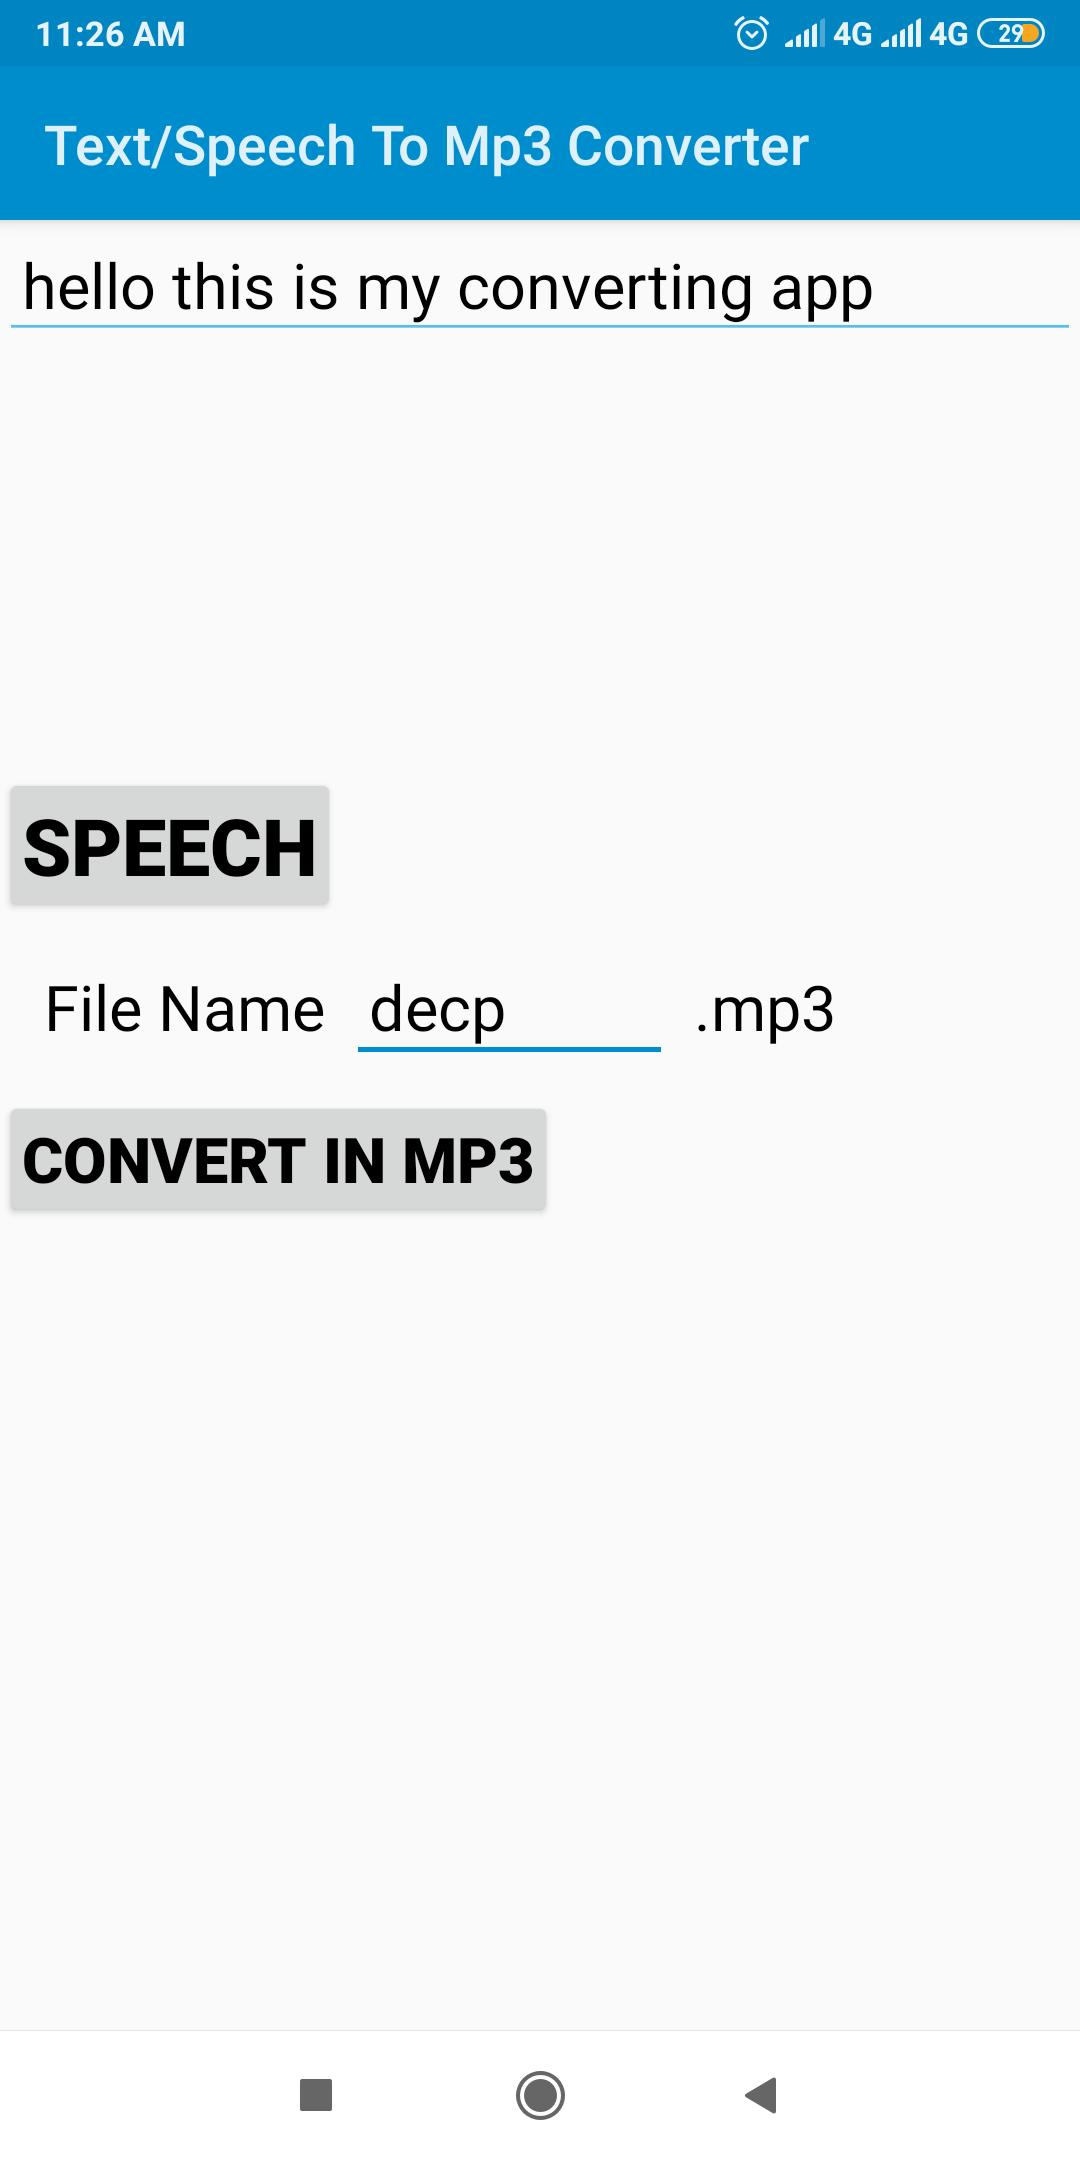 Text/Speech To Mp3 Converter for Android - APK Download